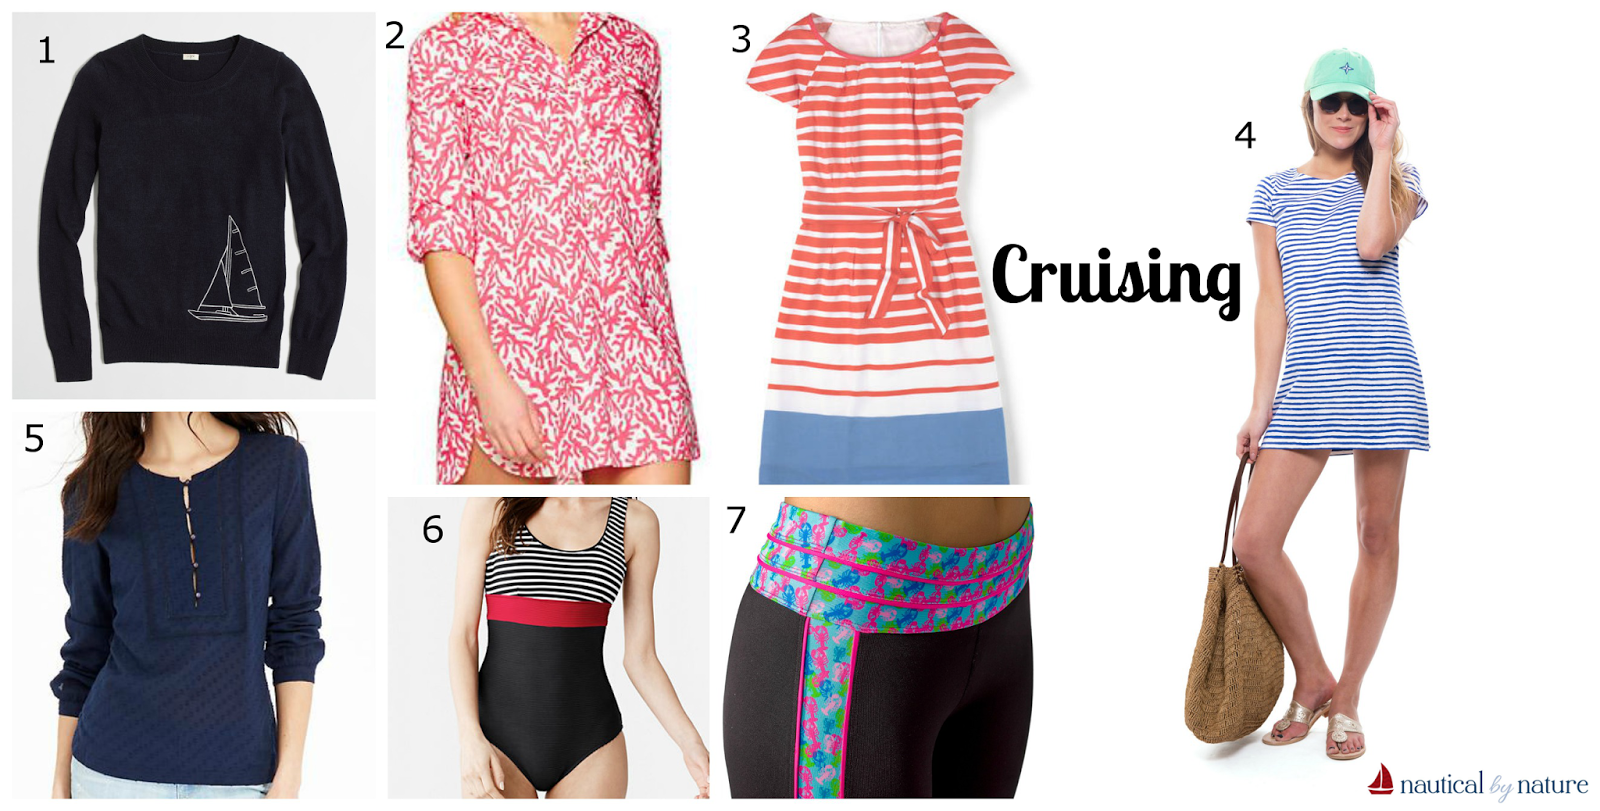 Nautical by Nature | Cruising Wish List